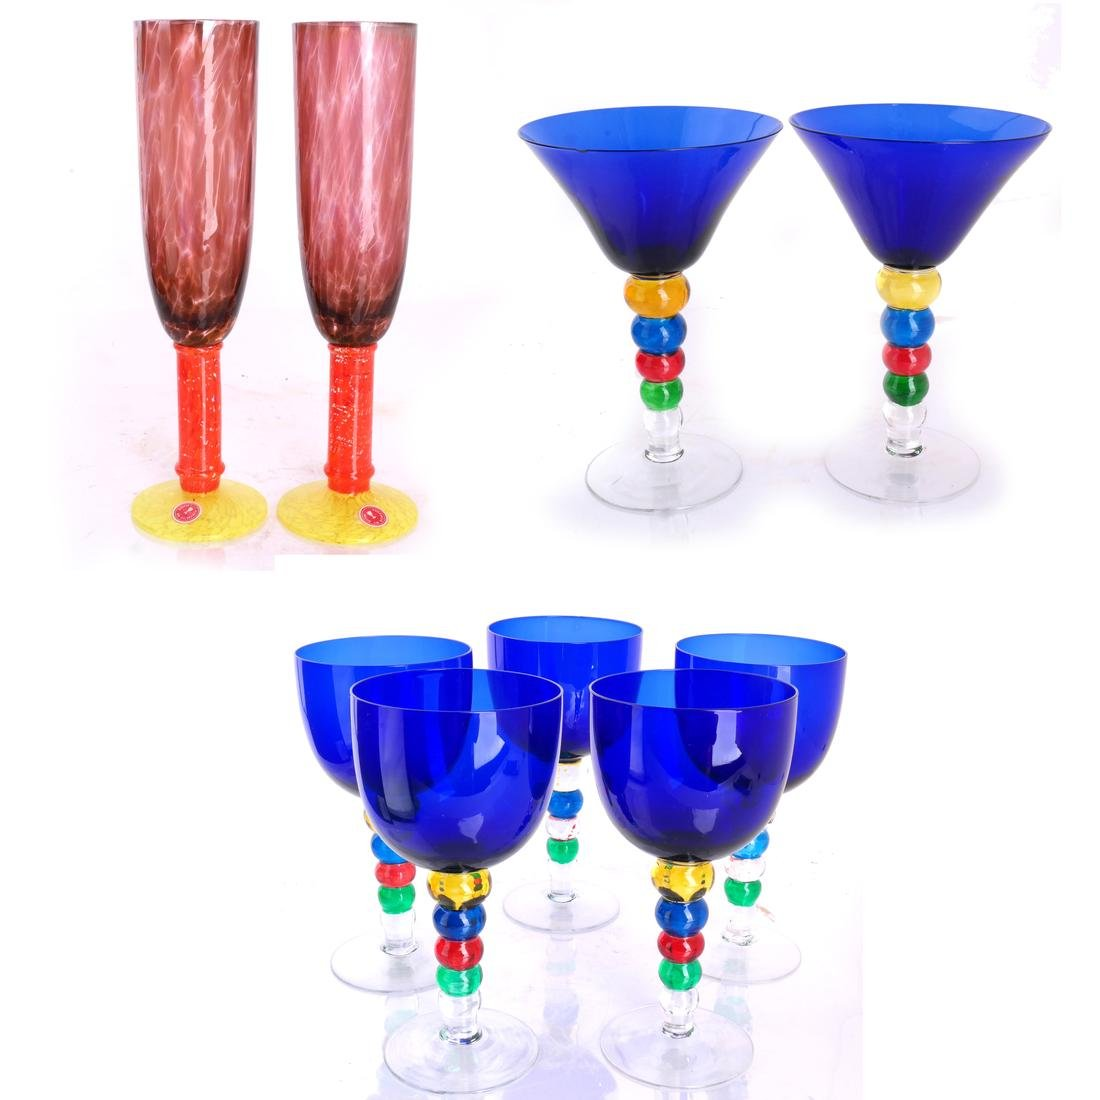 Mixed Group Glassware and Stemware